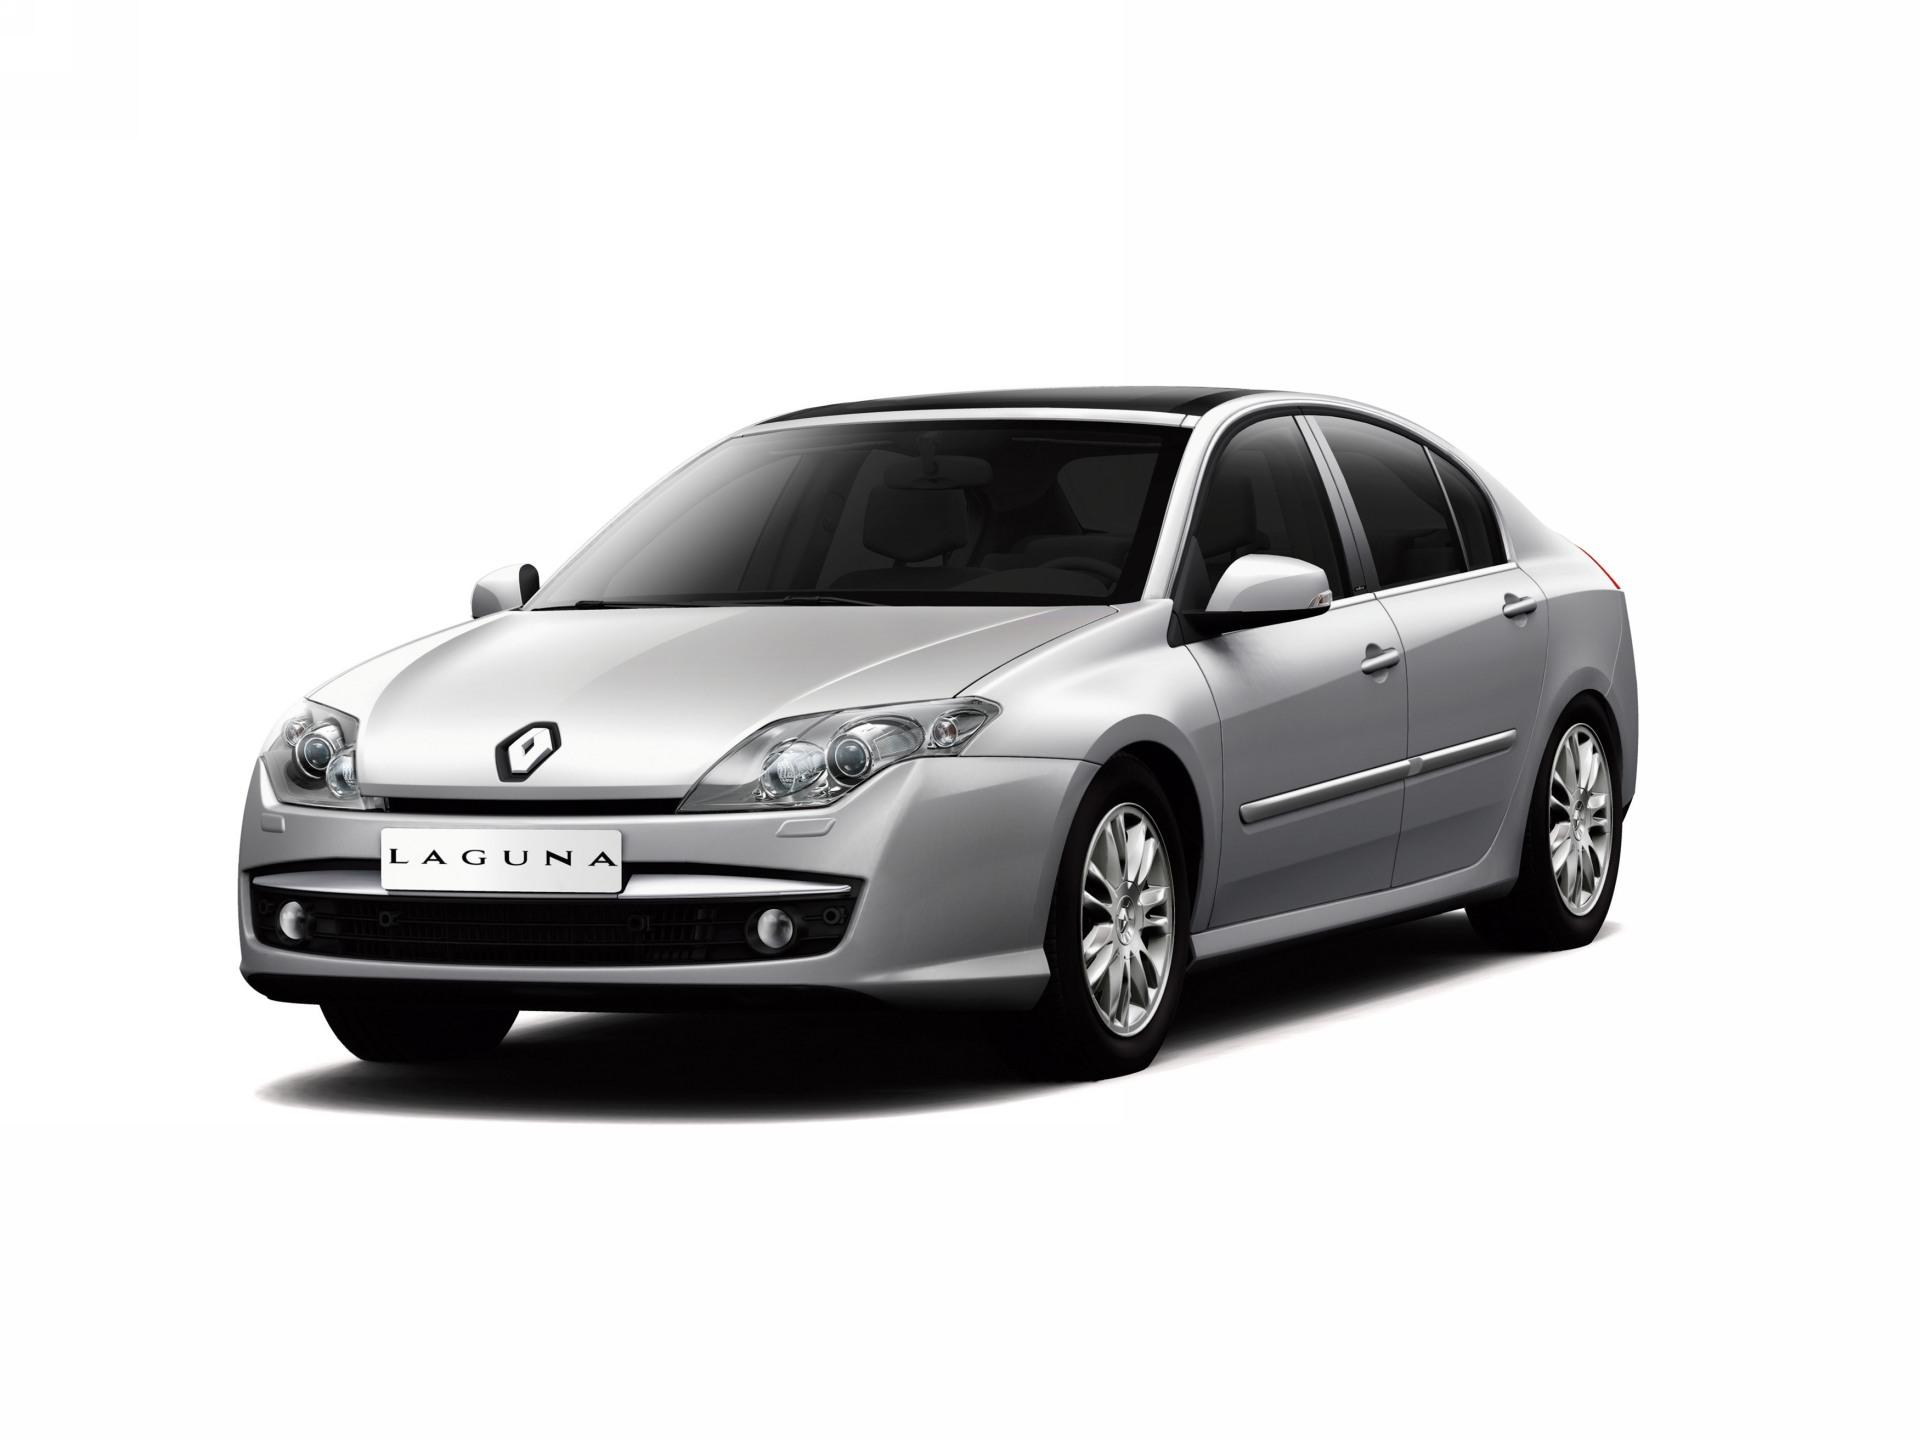 2009 renault laguna. Black Bedroom Furniture Sets. Home Design Ideas